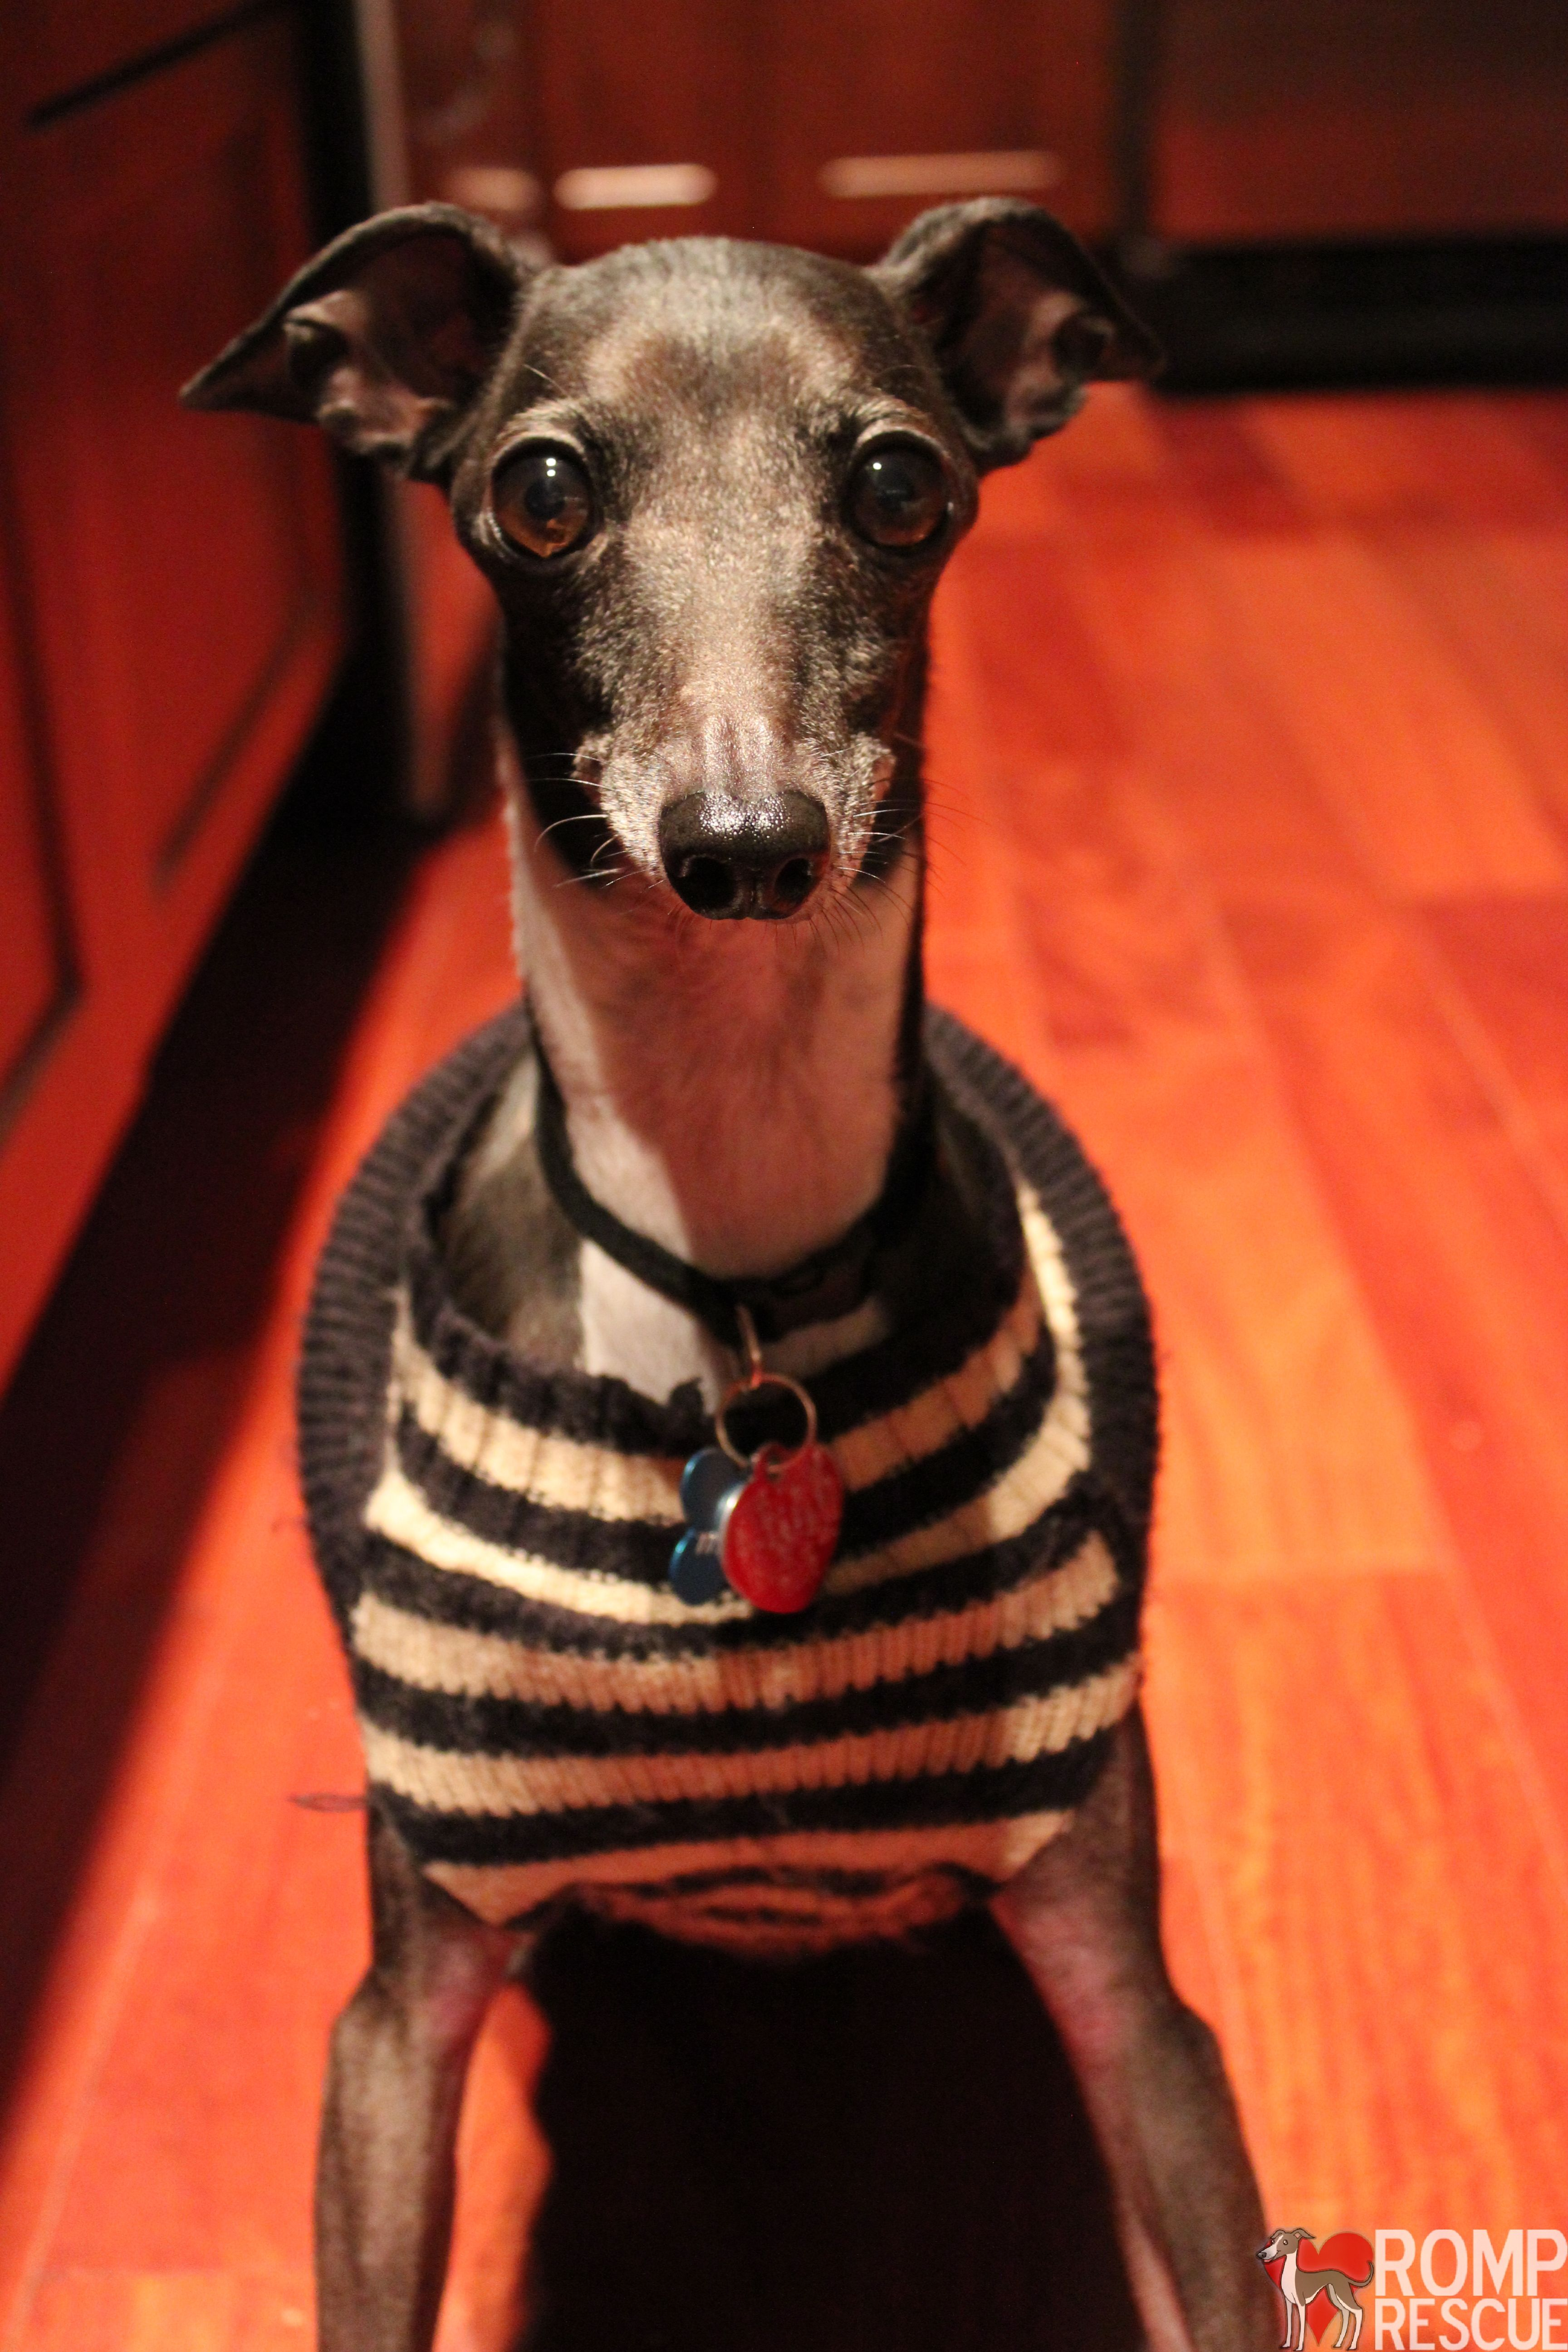 cute italian greyhound, hiphop beats updated daily